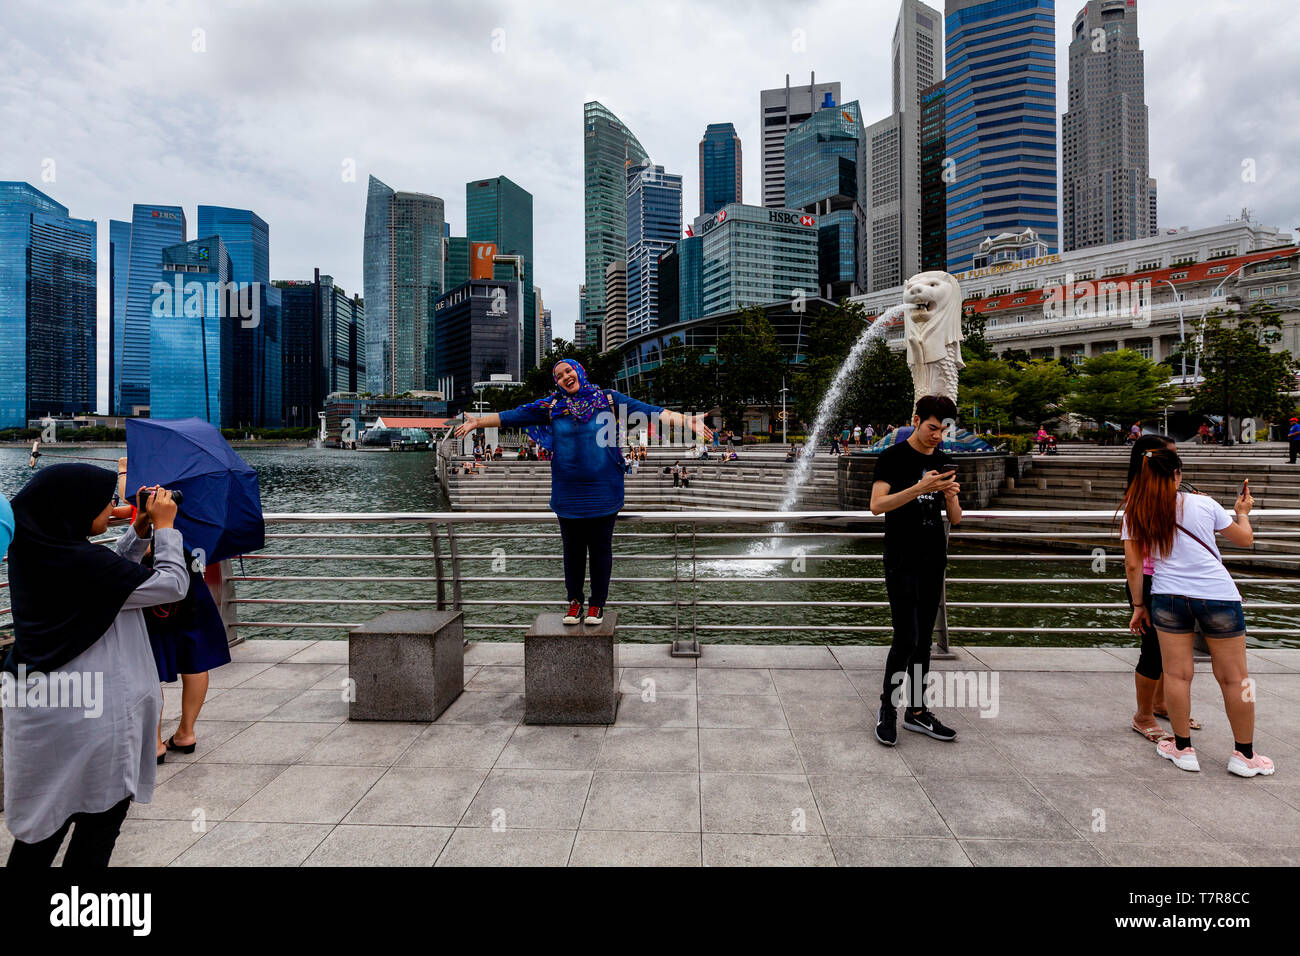 Tourists Posing For Photos In Front Of The Merlion Statue and Singapore Skyline, Singapore, South East Asia Stock Photo